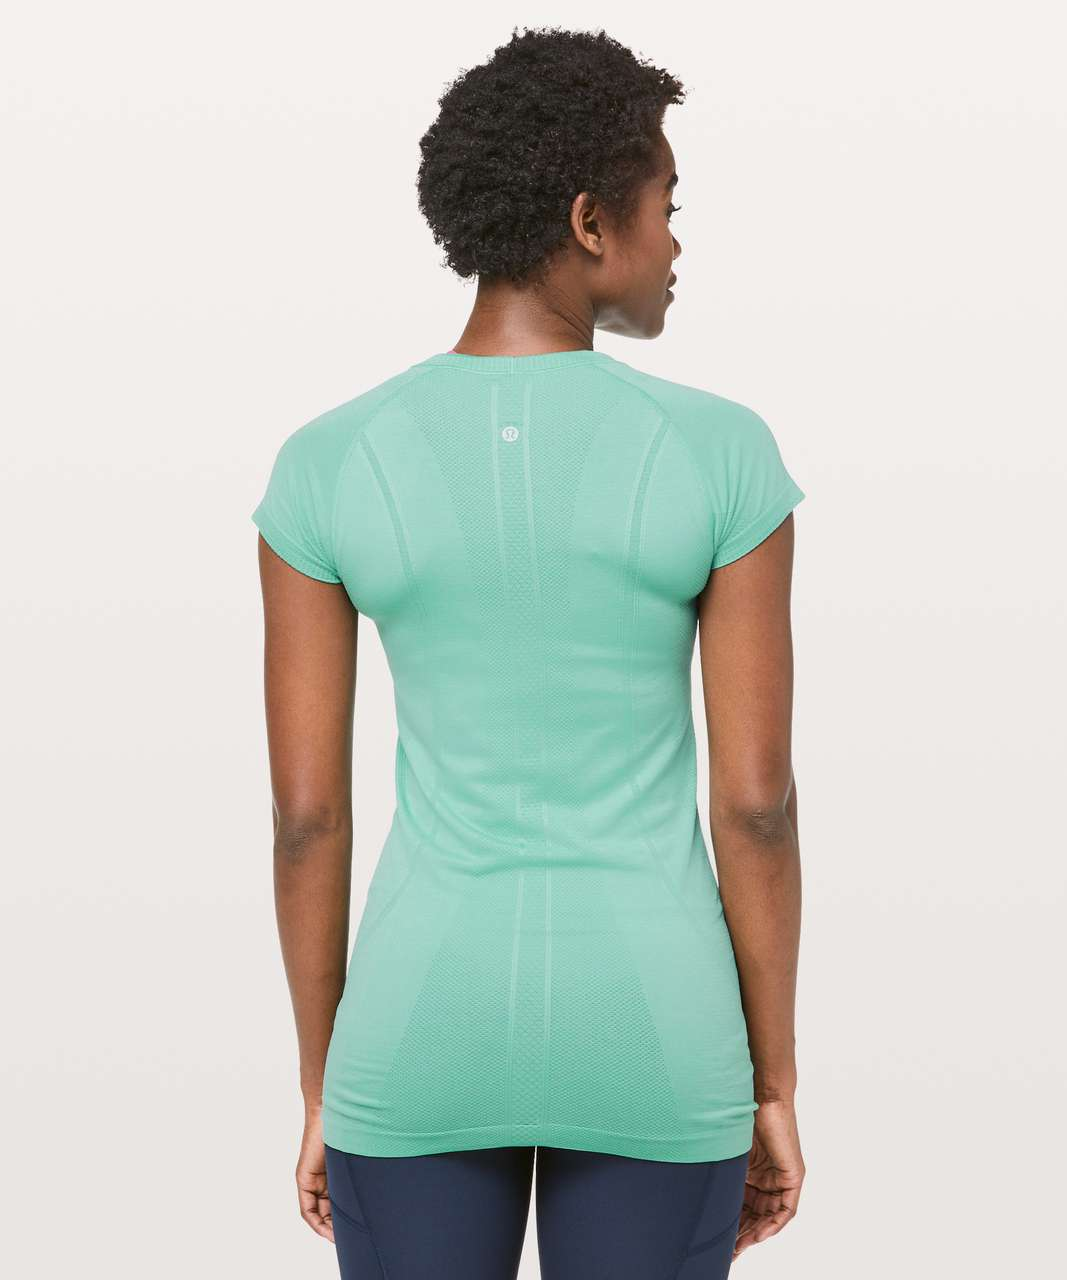 Lululemon Swiftly Tech Short Sleeve Crew - Aqua Mint / Aqua Mint